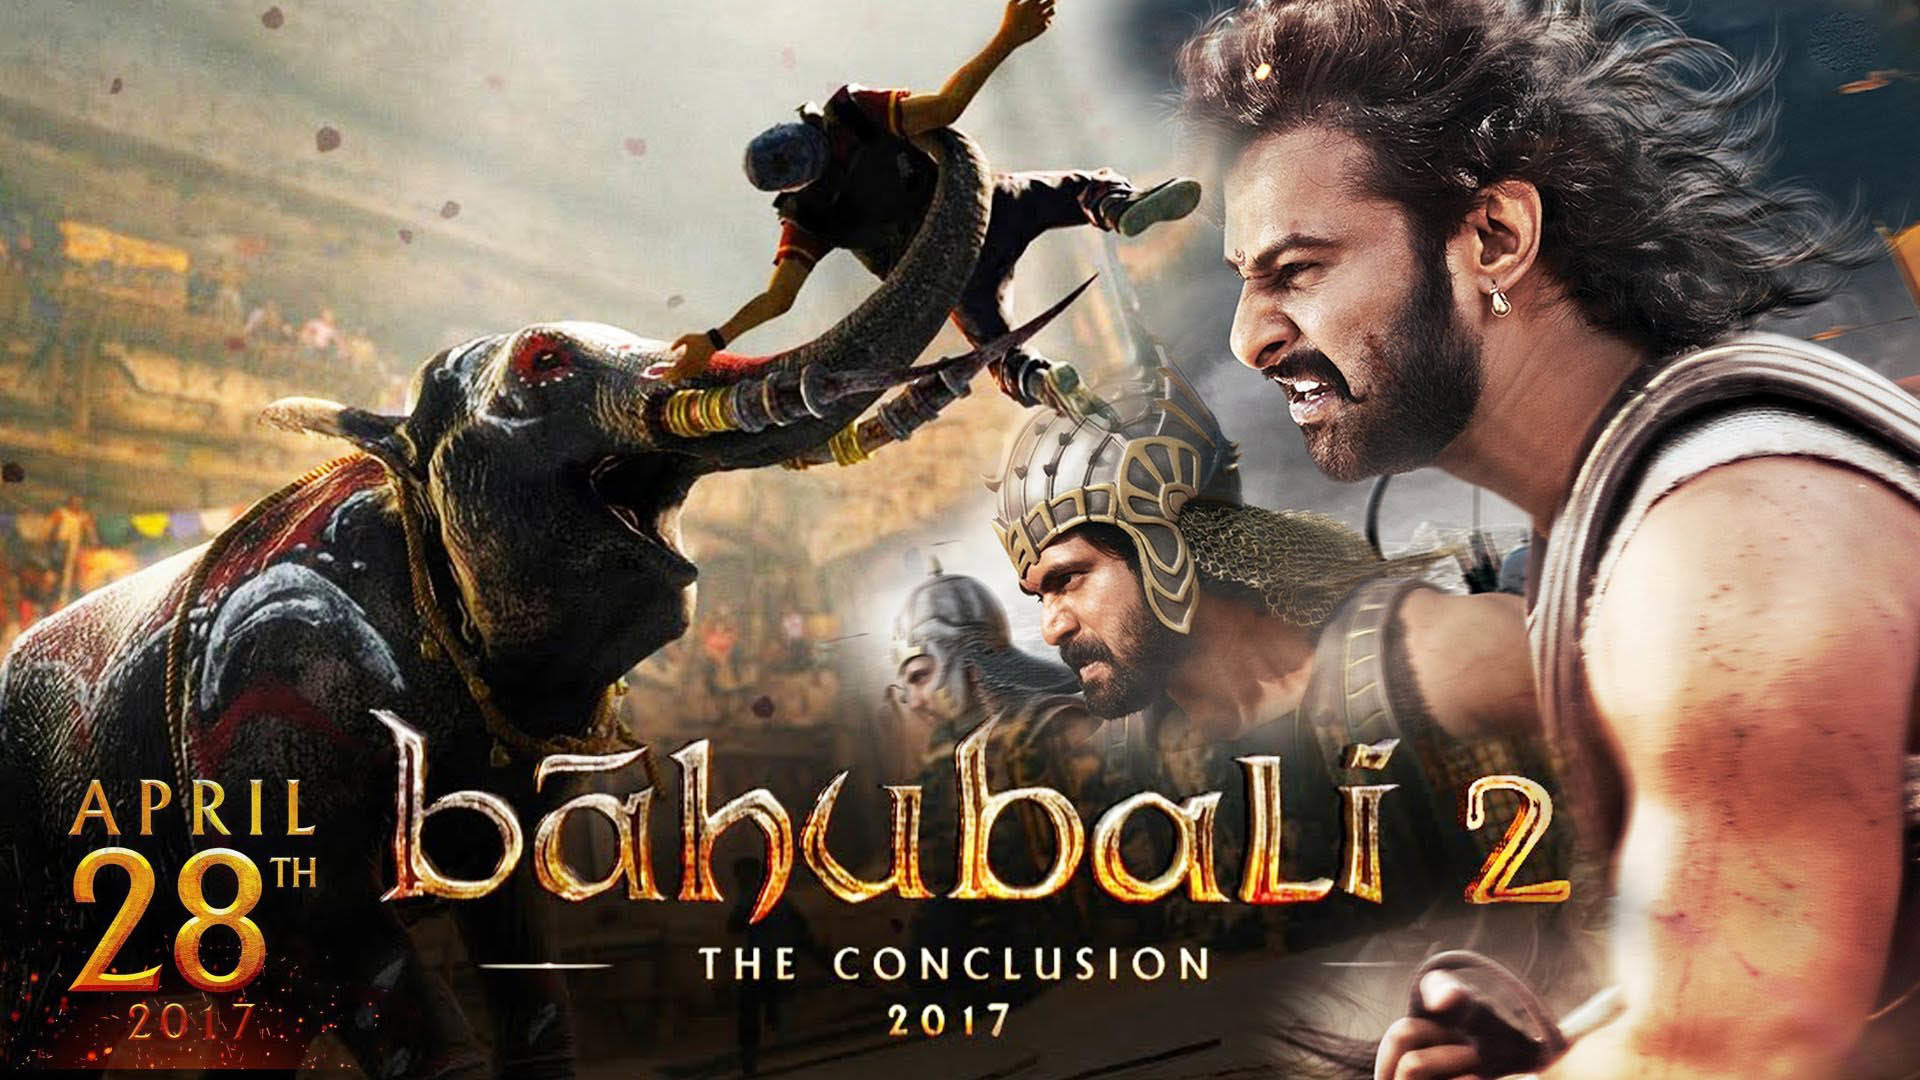 1920x1080 28 April 2017 bahubali 2 the conclusio releasing date hd wallpaper. Â«Â«